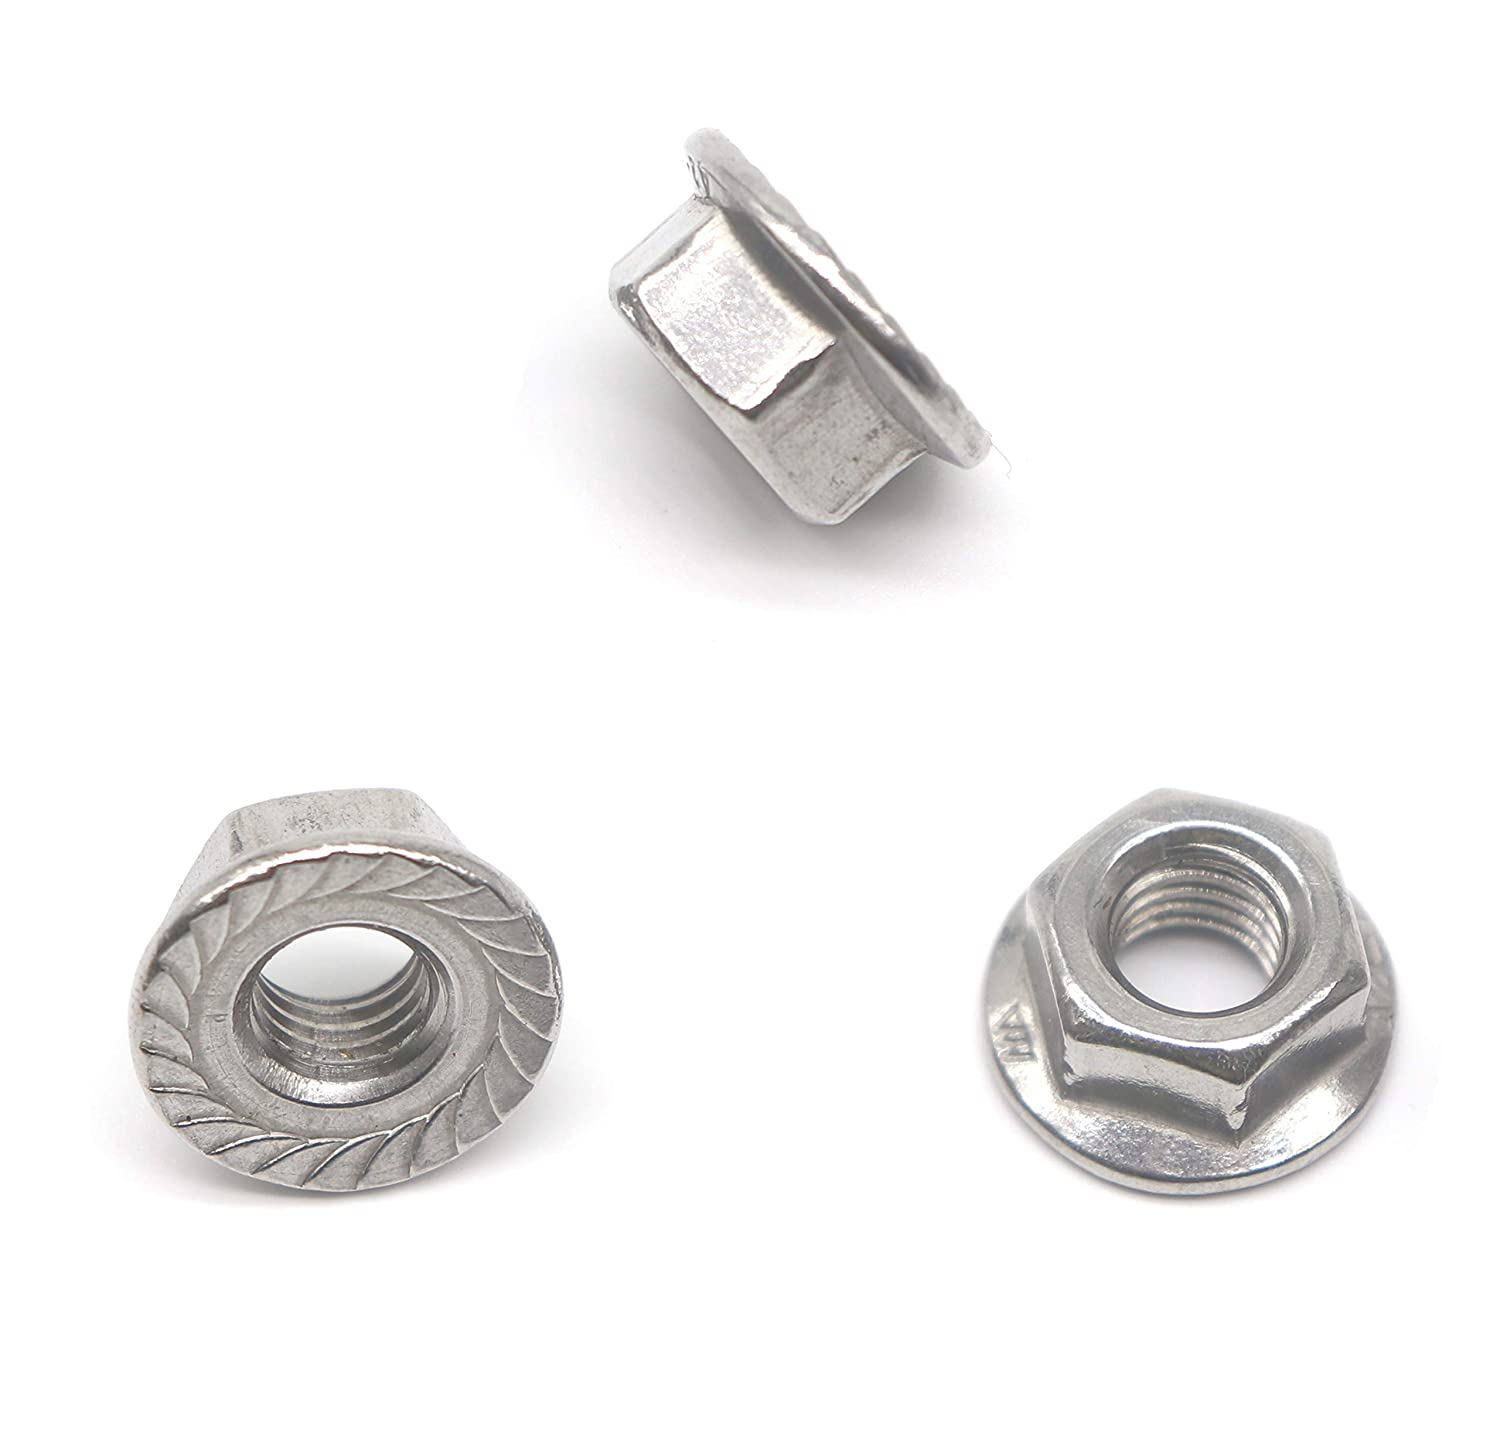 M8 Flange Nuts 20 Pieces binifiMux Thread M8 Serrated Hex Flange Lock Nuts 304 Stainless Steel